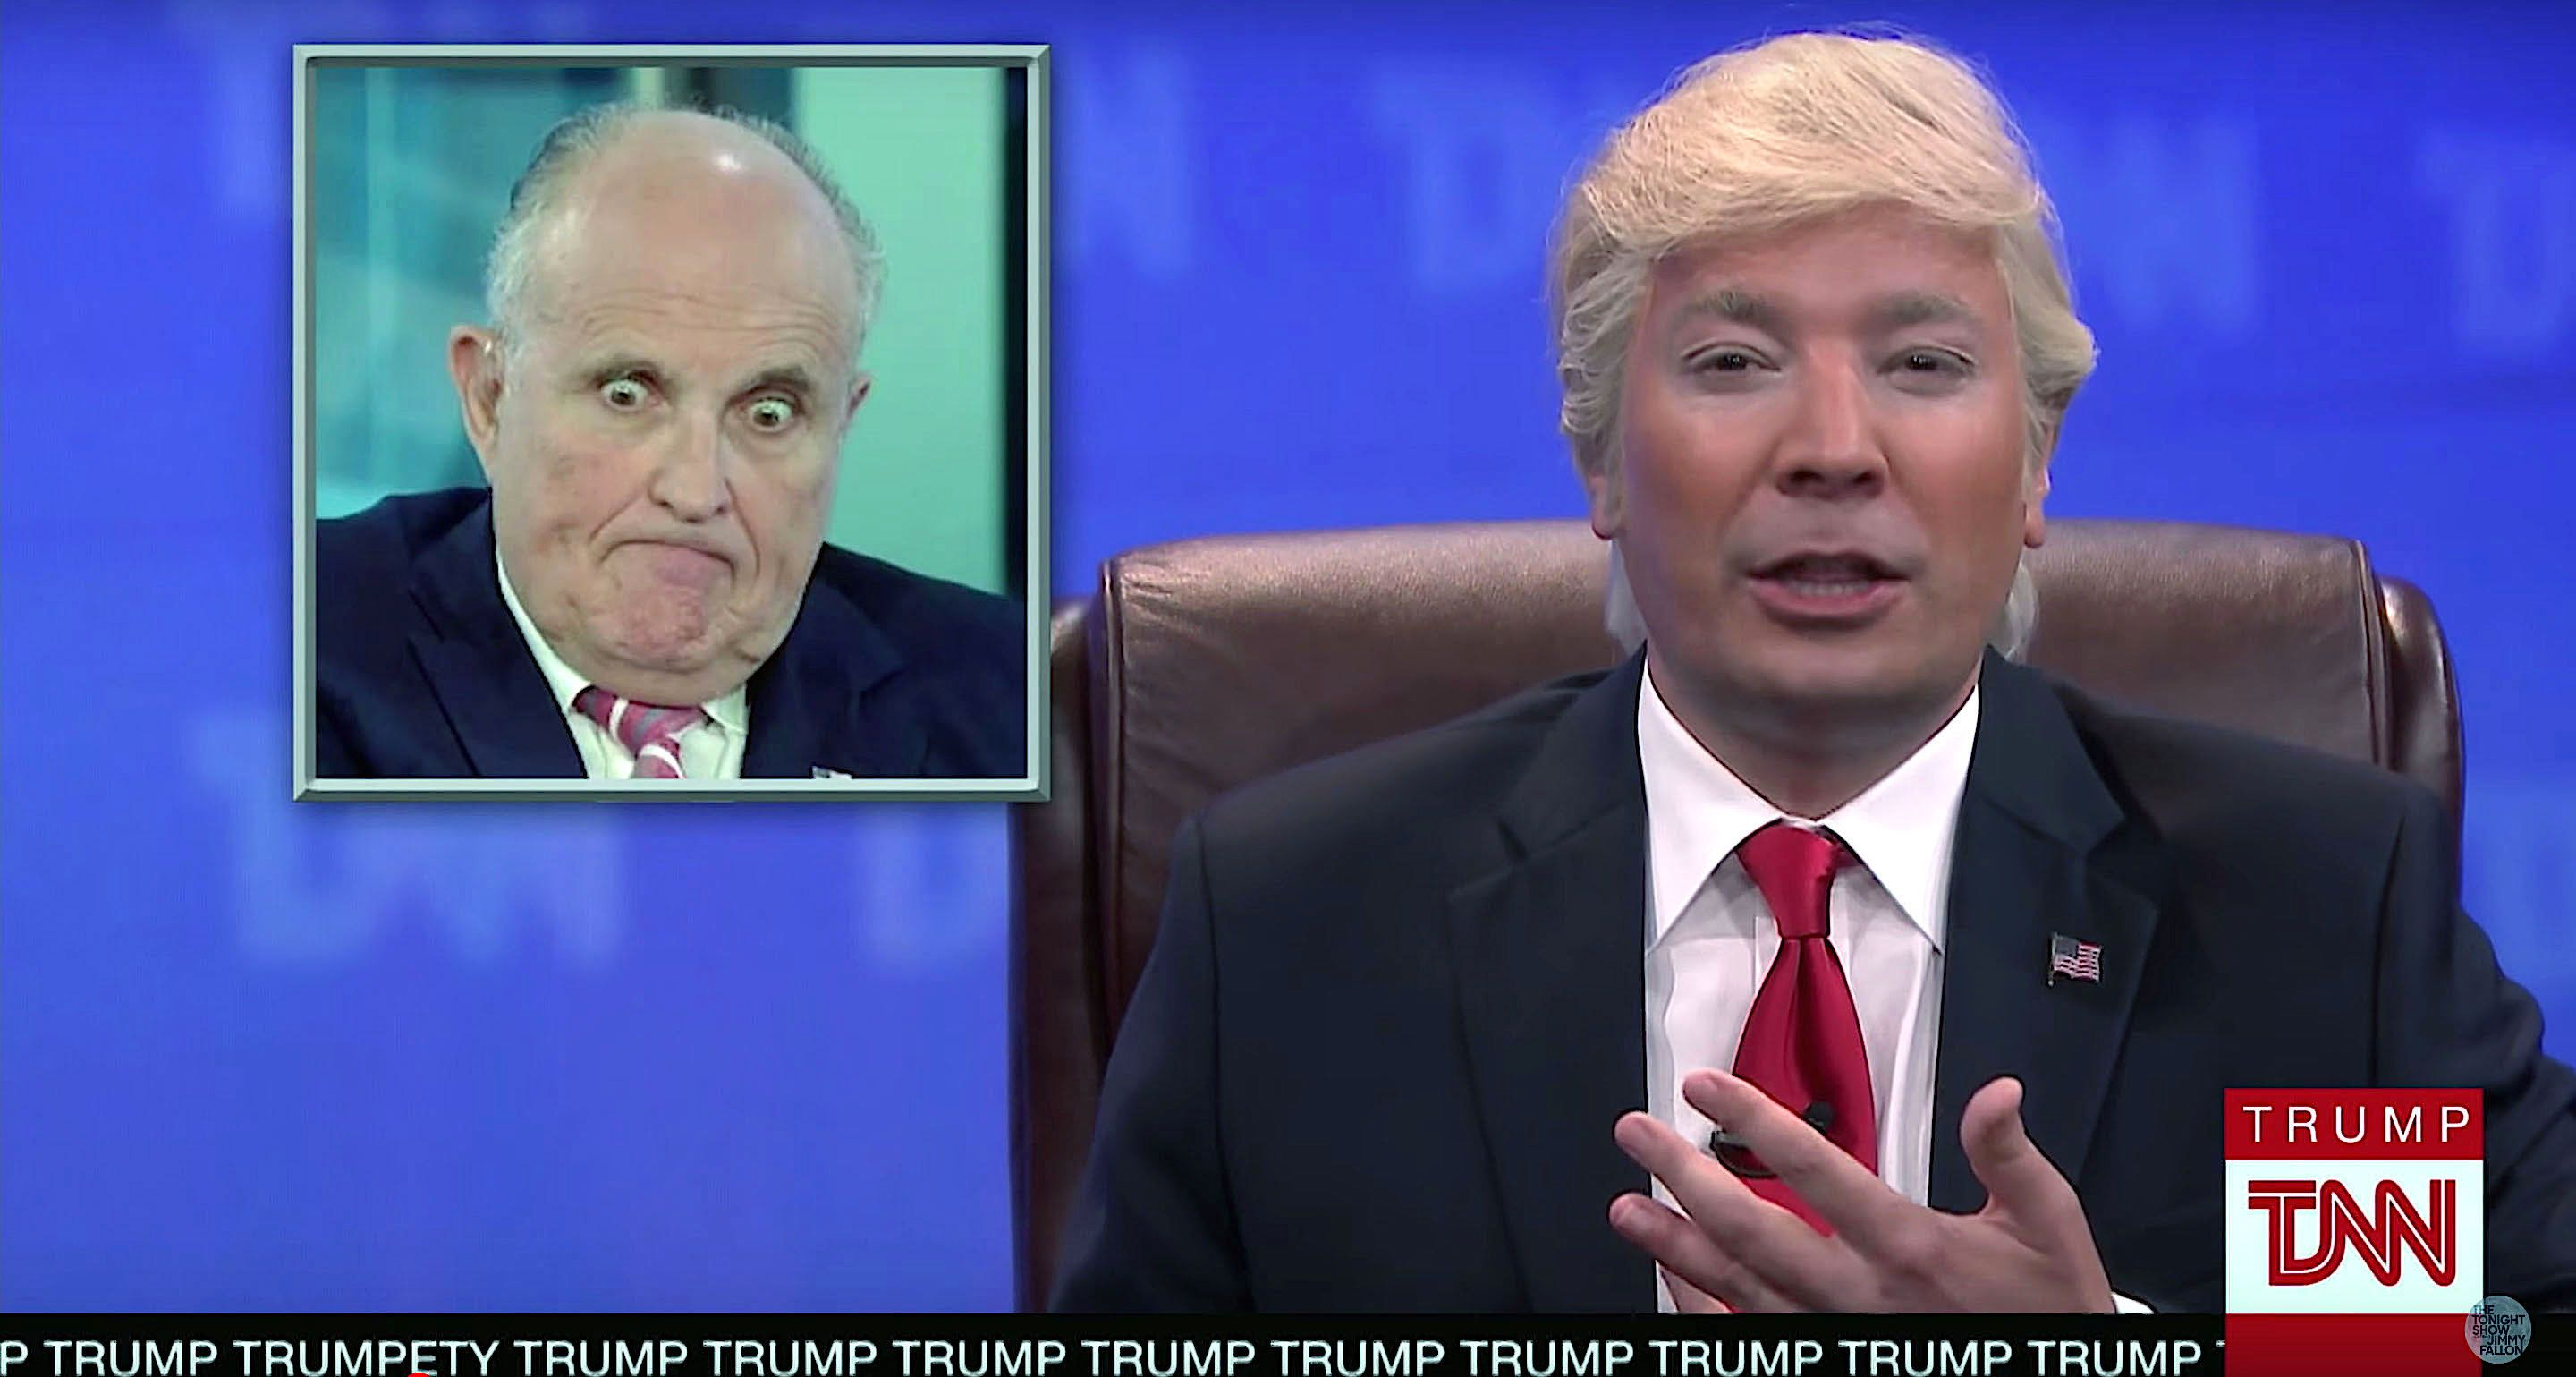 Jimmy Fallon as President Donald Trump anchors the Trump News Network